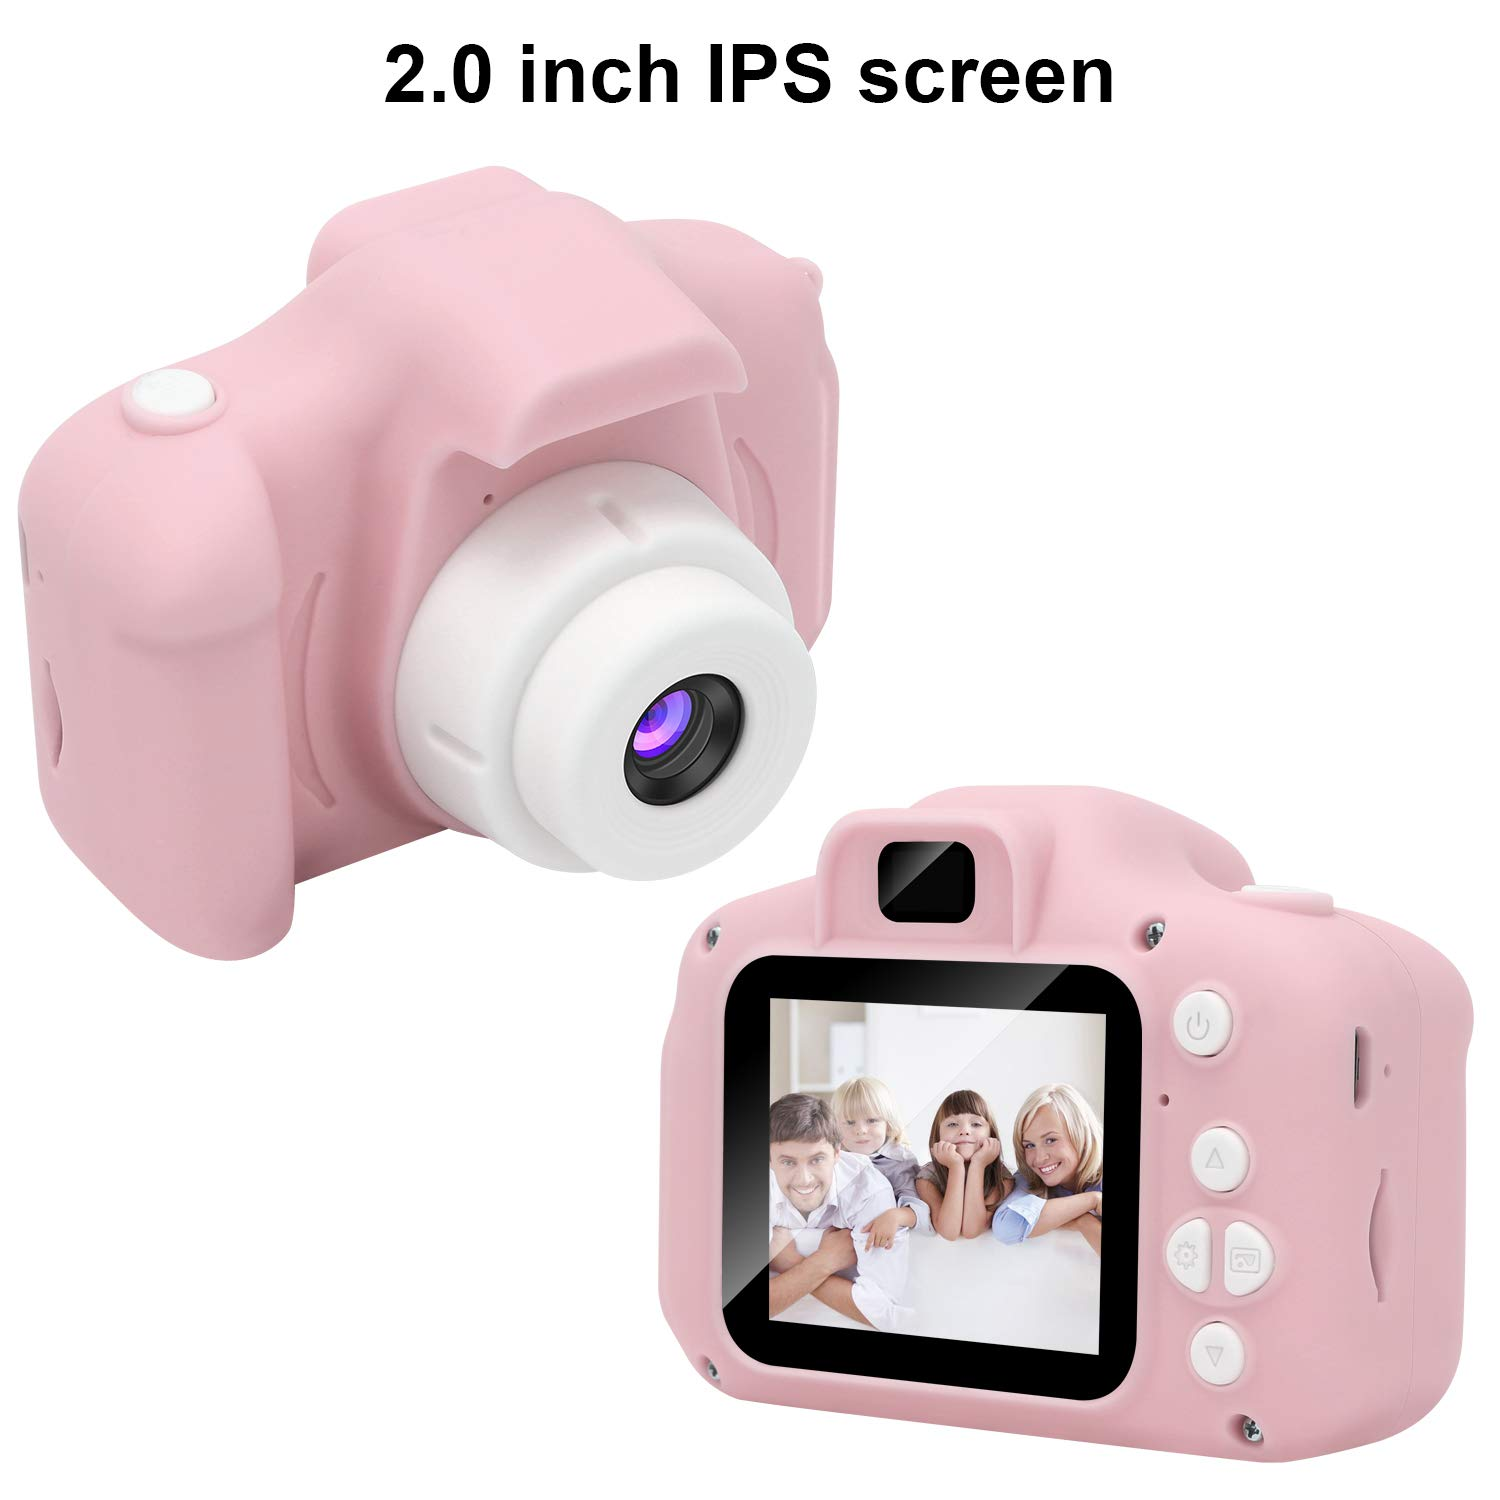 DDGG Kids Digital Camera for Girls Age 3-10,Toddler Cameras Child Camcorder Mini Cartoon Pink Rechargeable Camera Shockproof 8MP HD Children Video Record Camera (16GB Memory Card Included) by DDGG (Image #2)